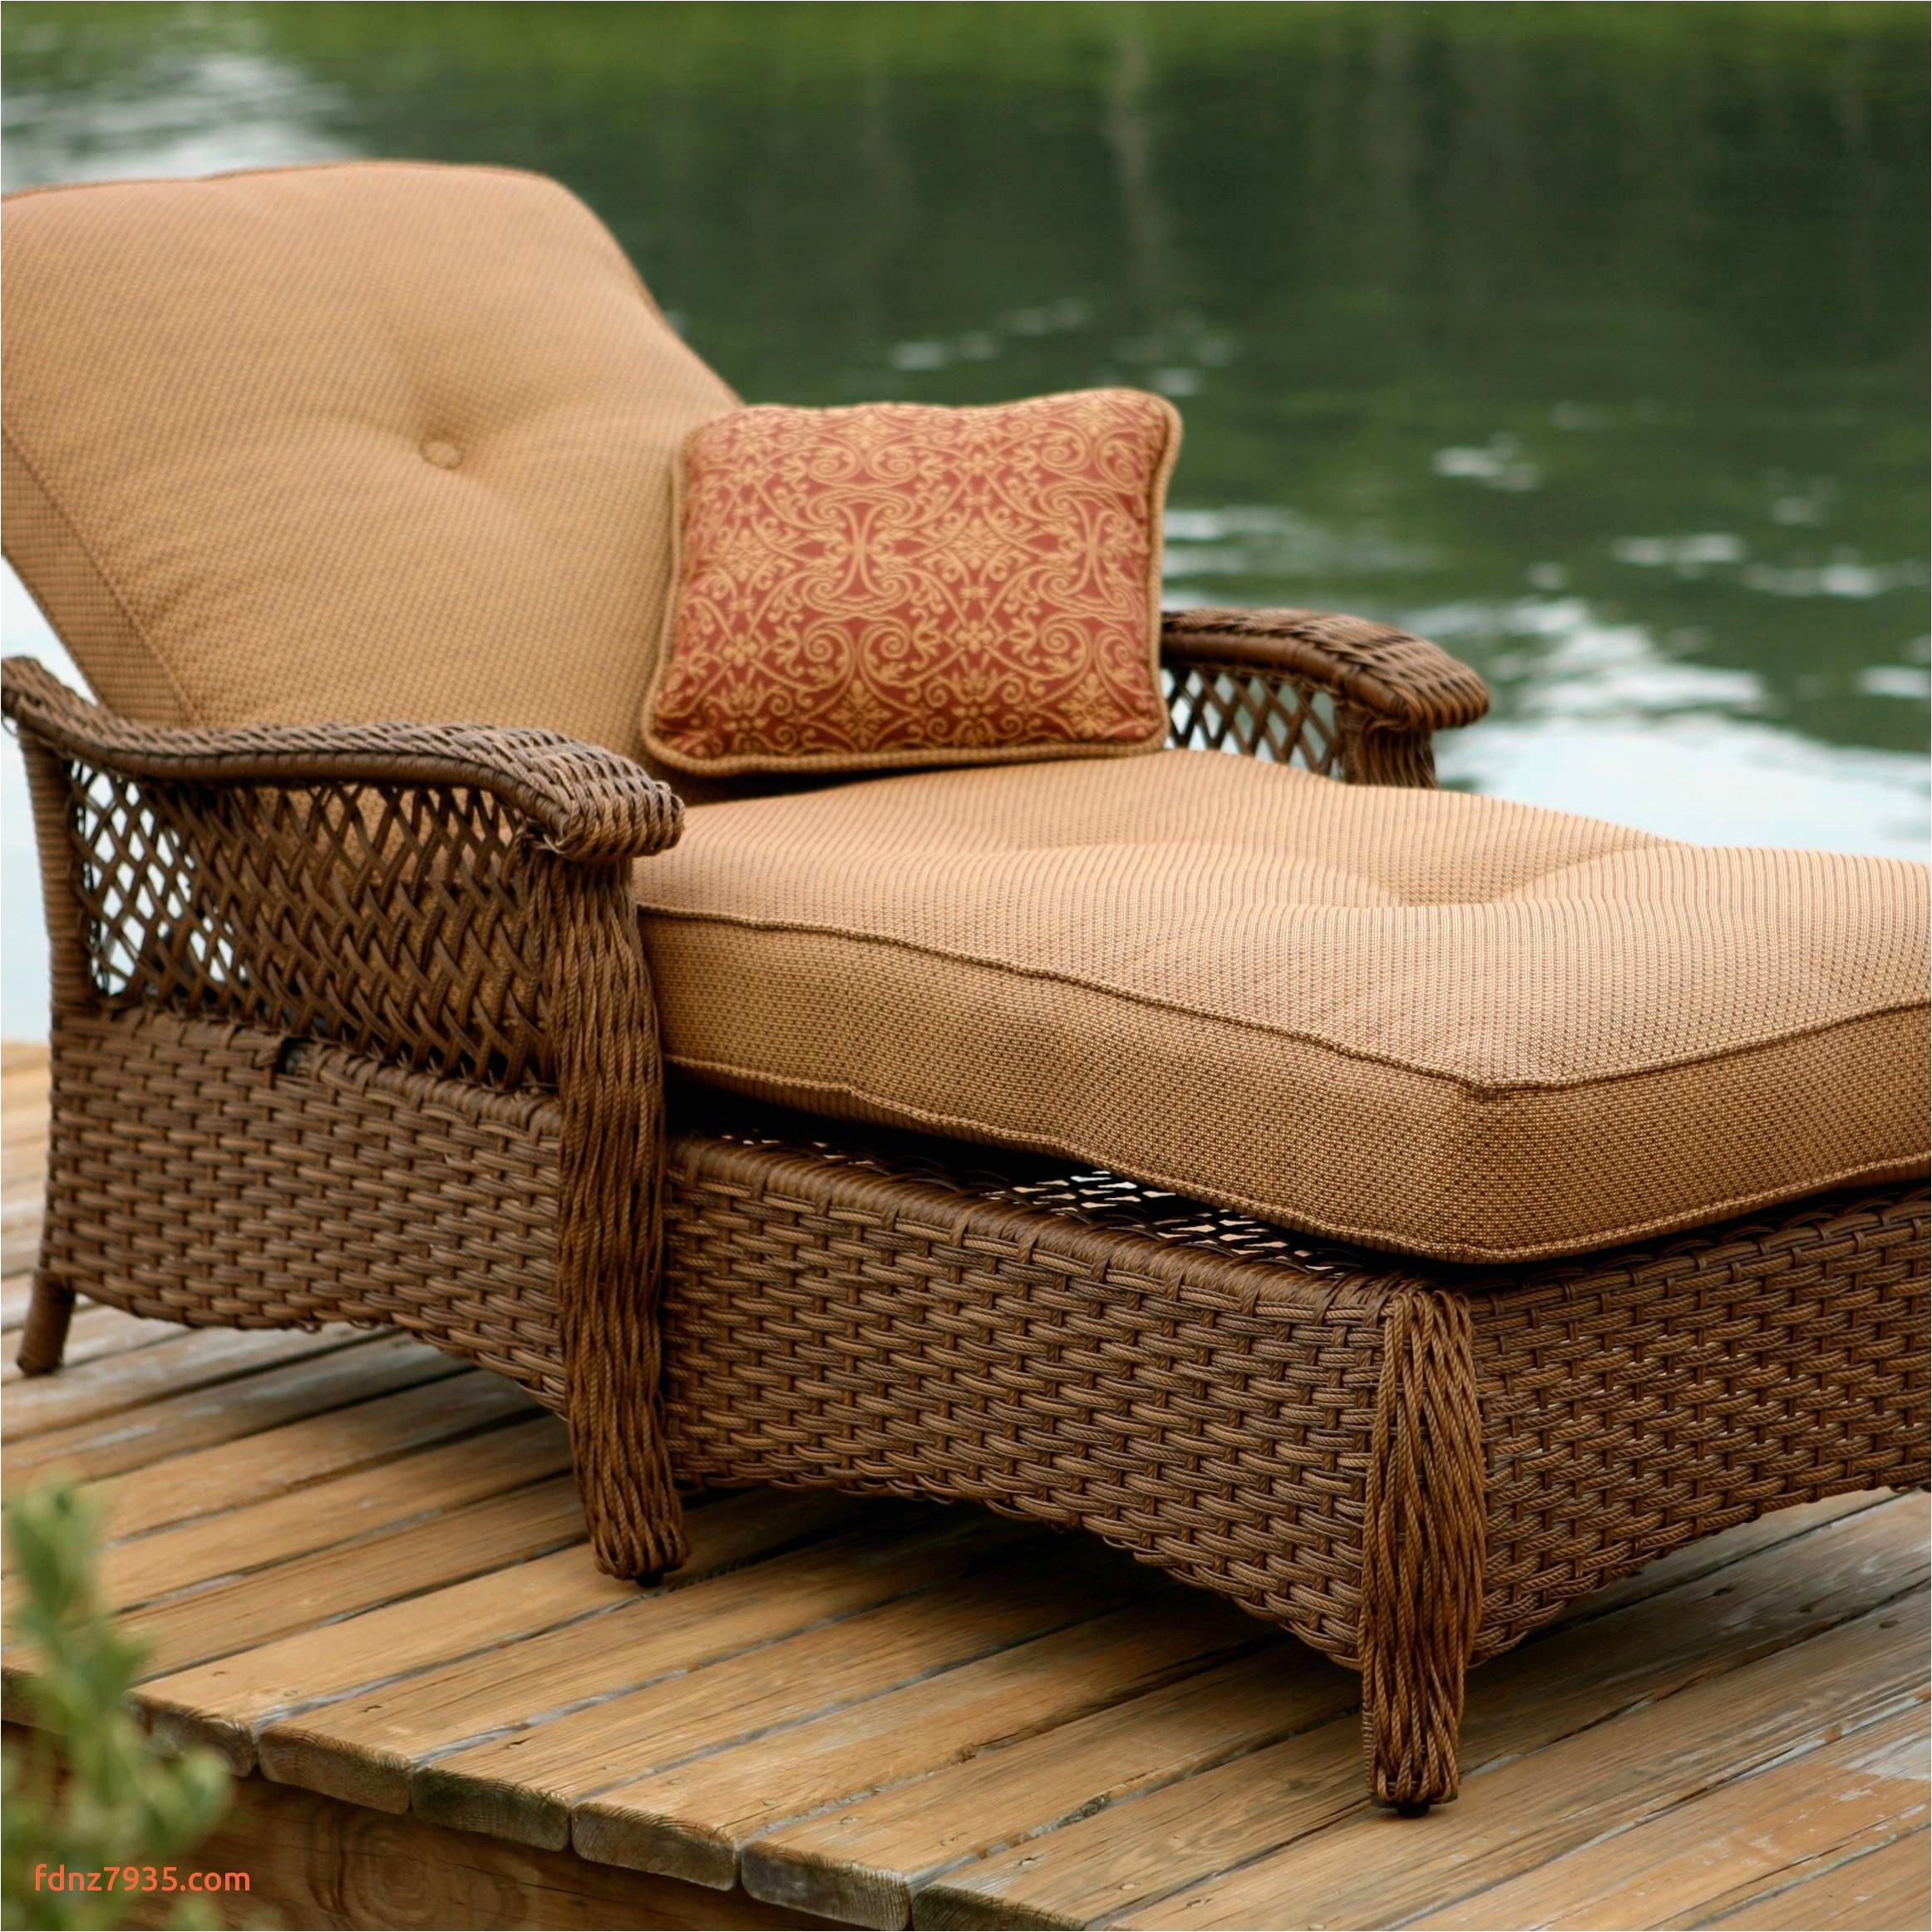 where to buy sofa covers awesome patio furniture chair cushions awesome wicker outdoor sofa 0d patio